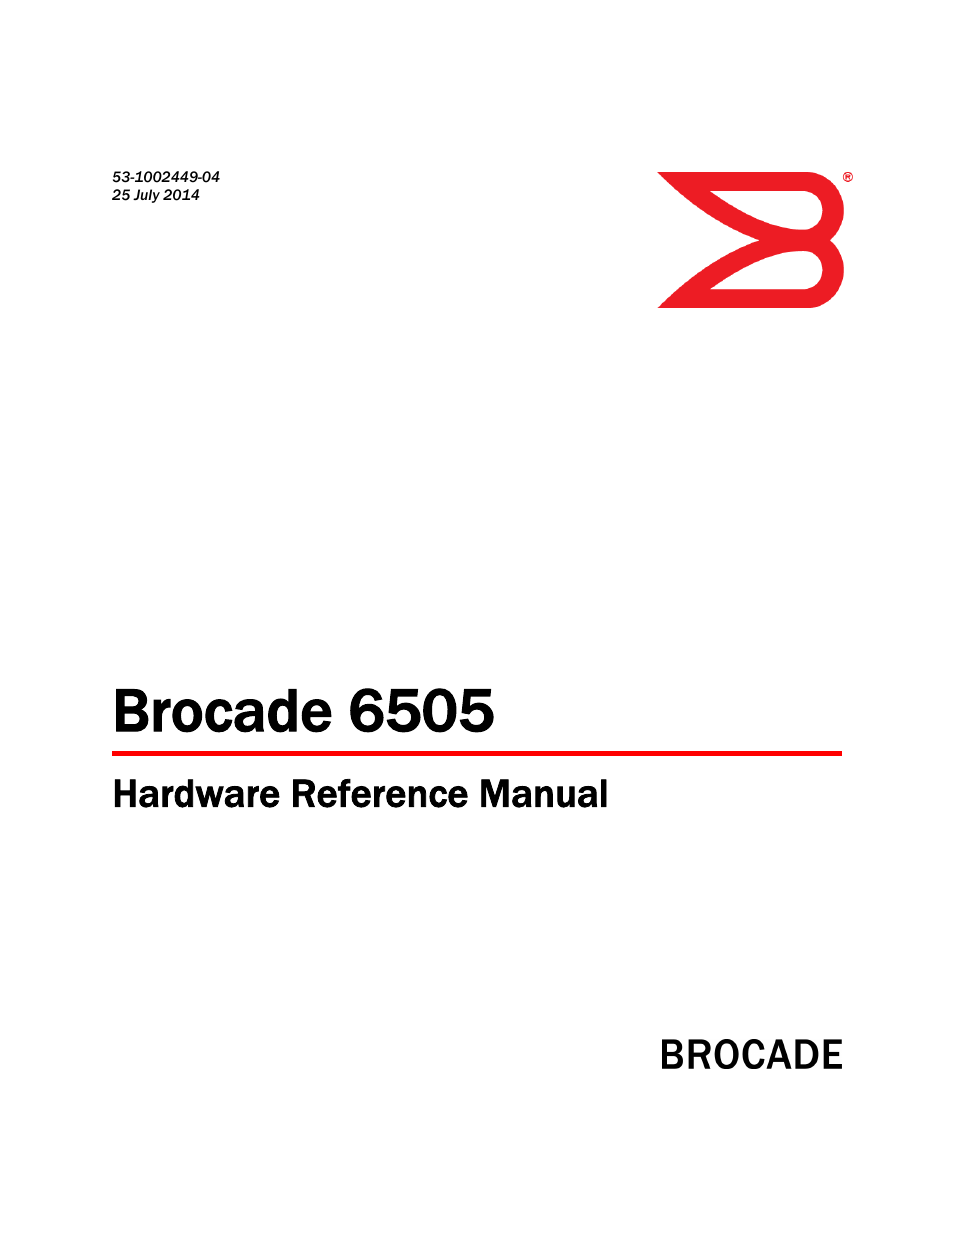 Brocade 6505 hardware reference manual user manual 66 pages xflitez Image collections